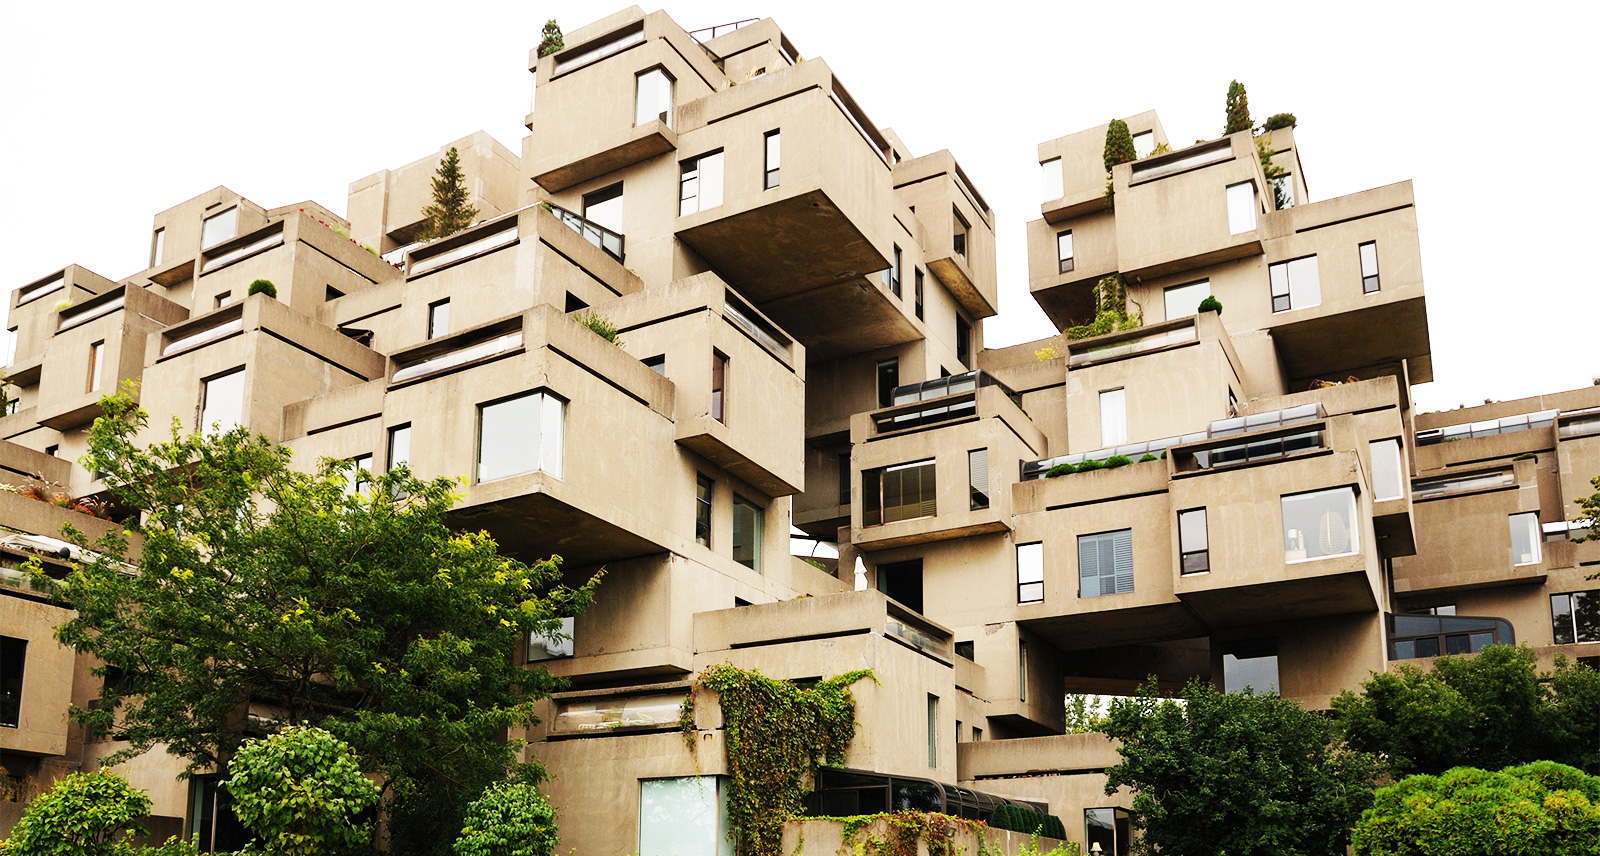 How long did it take to build habitat 67